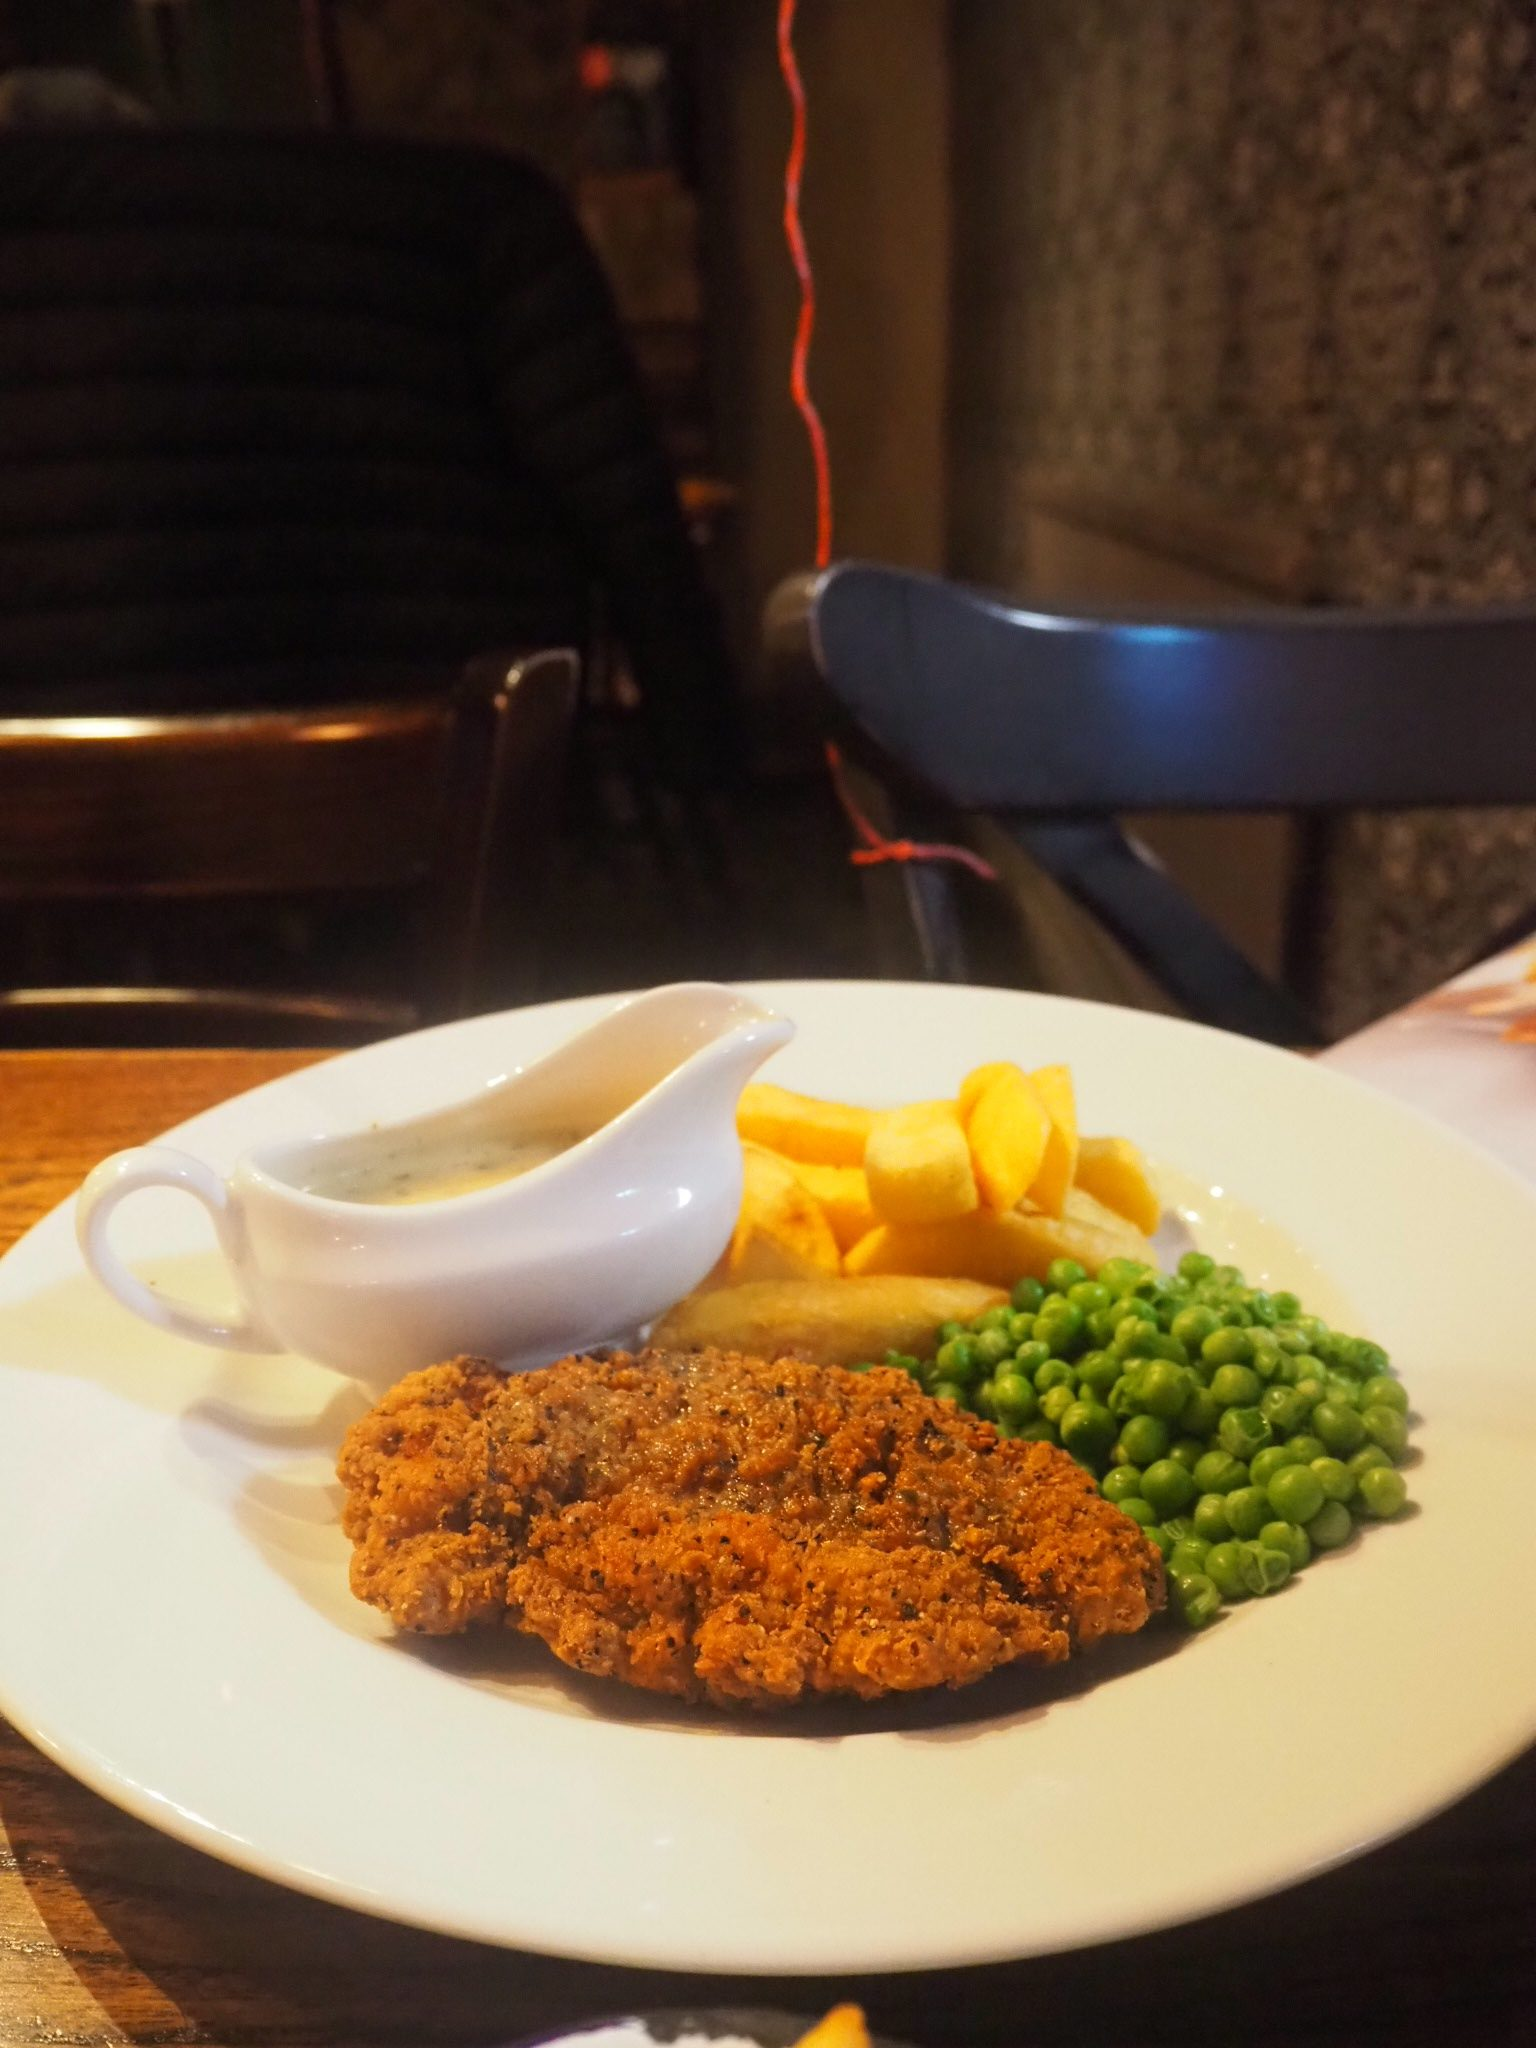 chicken kiev with a twist - my favourite from the new menu